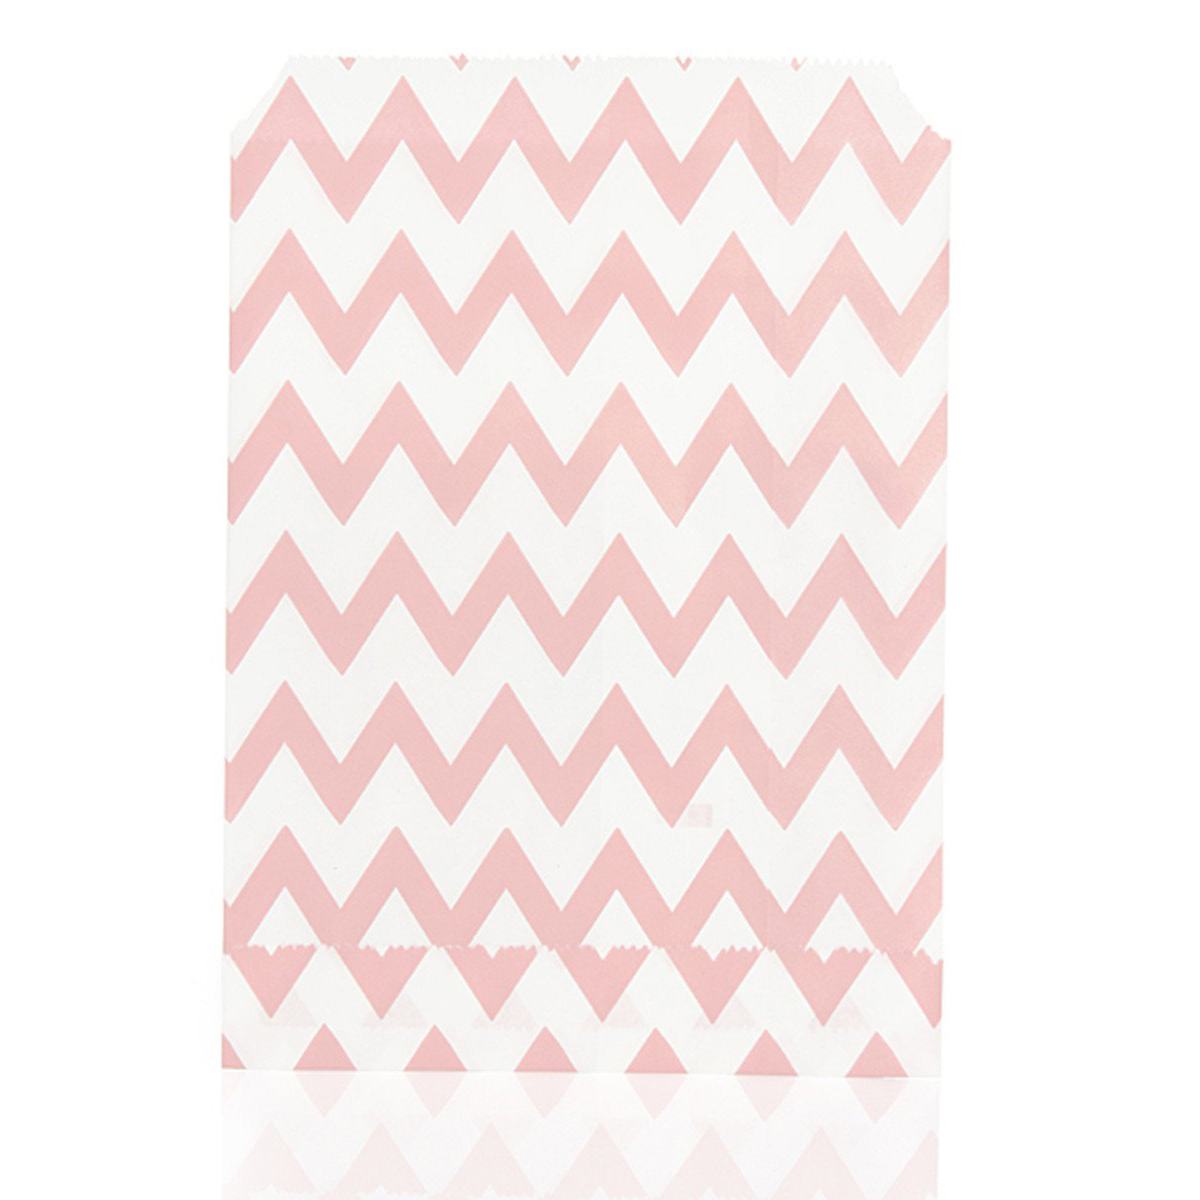 25 Pcs Bag ruched Packet In Paper For Gift Candy Buffet Feast Marriage Anniversary Party pink25 Pcs Bag ruched Packet In Paper For Gift Candy Buffet Feast Marriage Anniversary Party pink